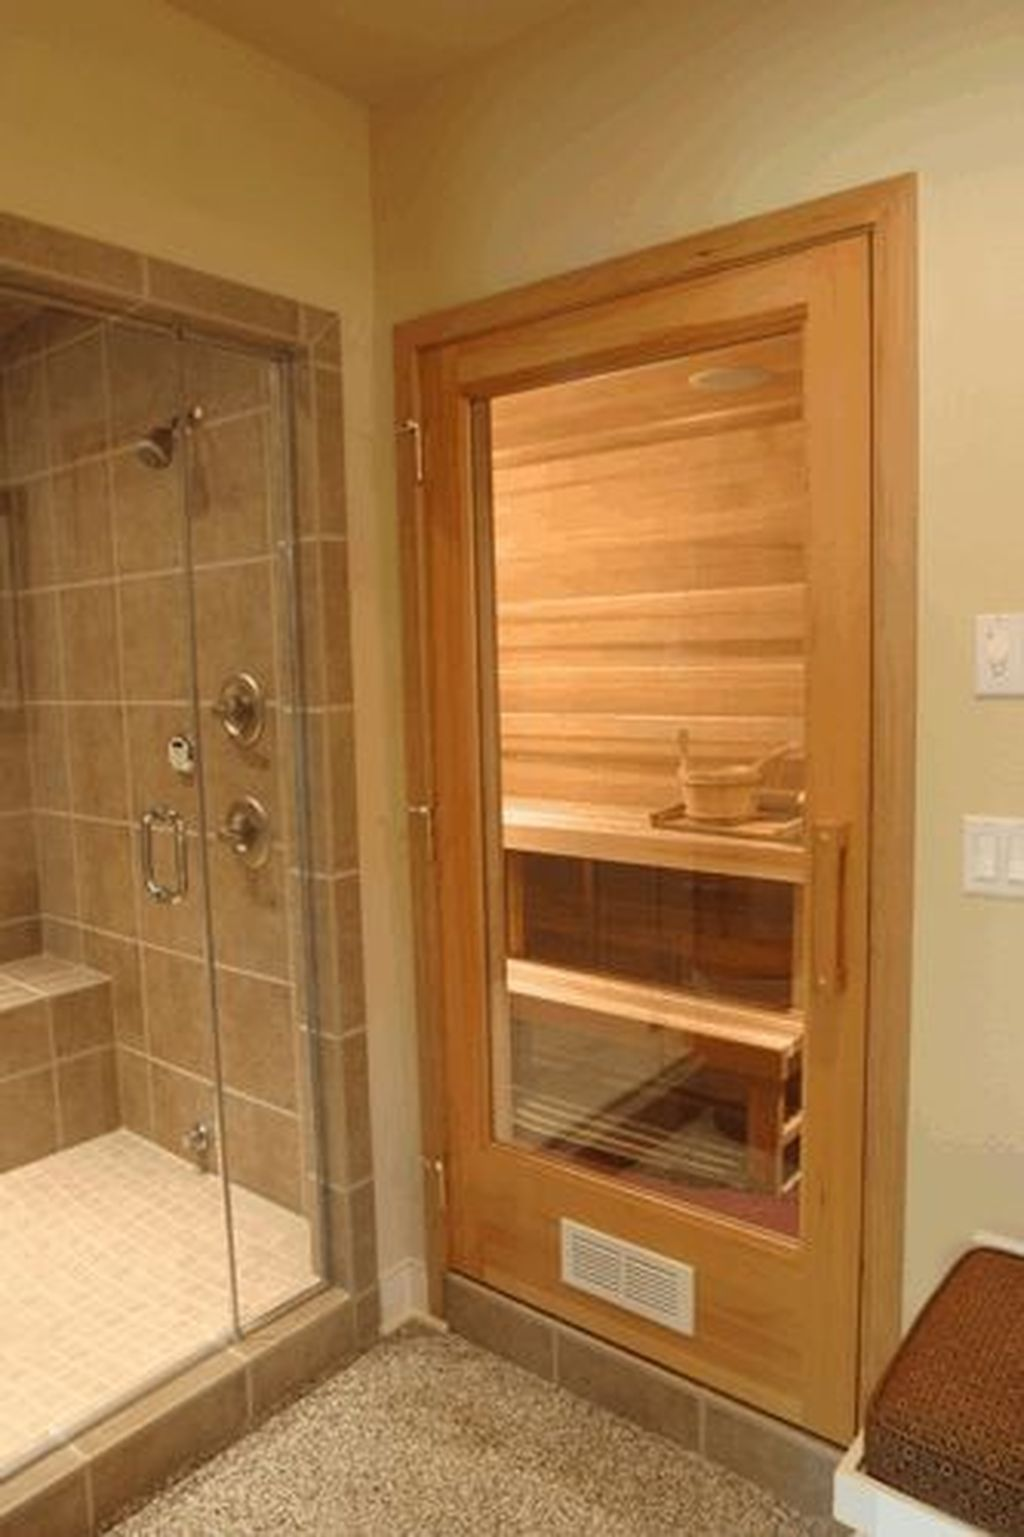 Nice 38 Easy And Cheap Diy Sauna Design You Can Try At Home More At Https Homystyle Com 2018 07 Sauna Design Small Bathroom Remodel Basement Bathroom Design